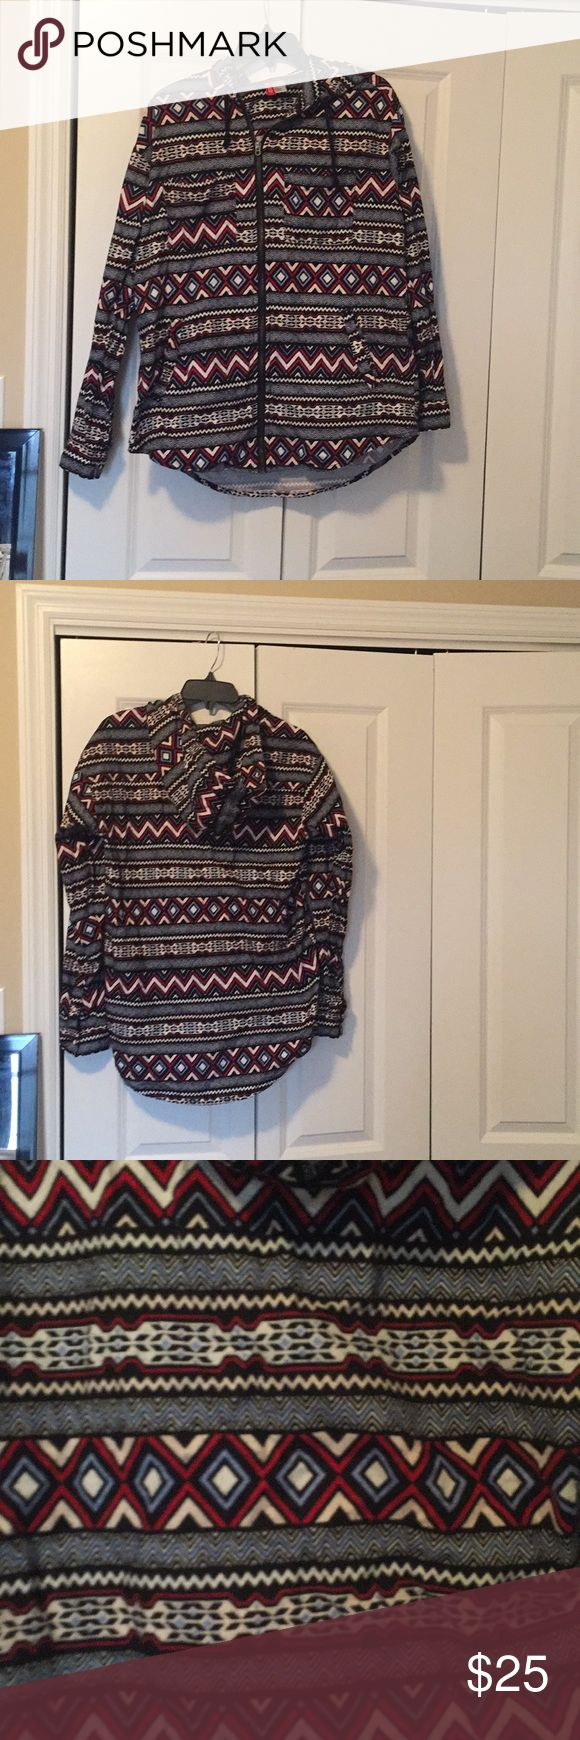 Aztec zip up hoodie Worn but in great shape H&M Tops Sweatshirts & Hoodies